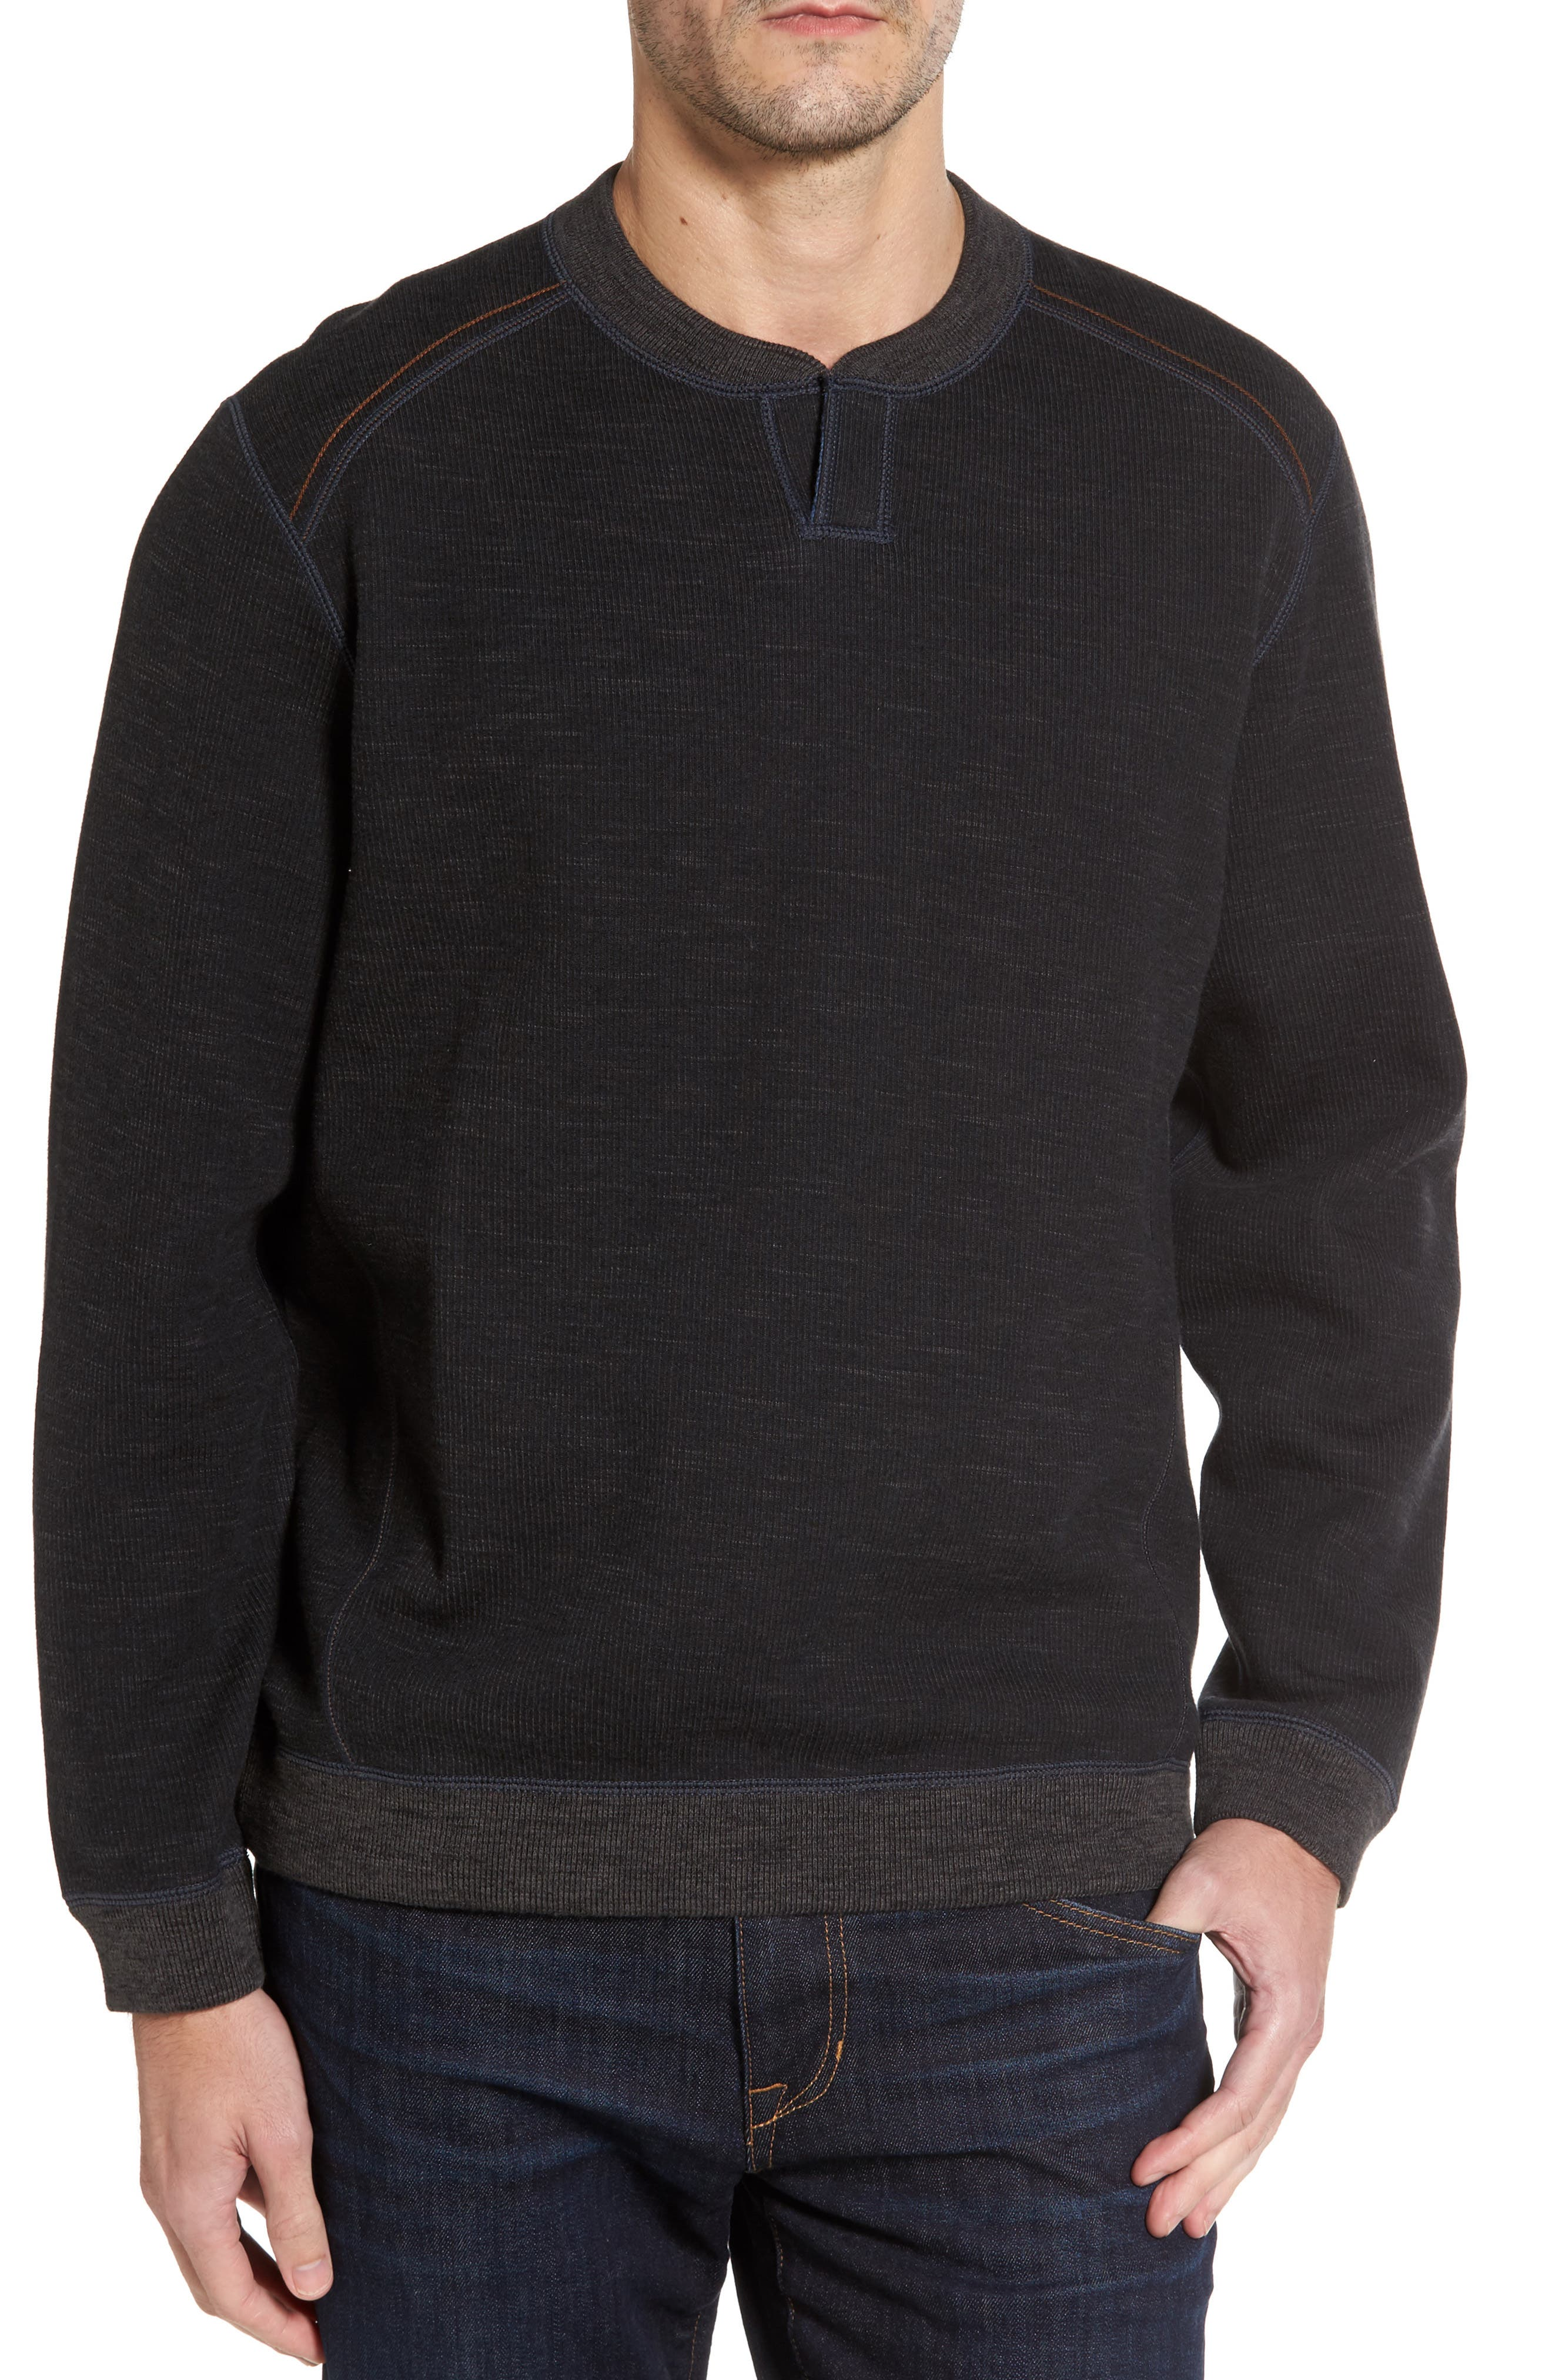 Flipsider Abaco Pullover,                         Main,                         color, Black